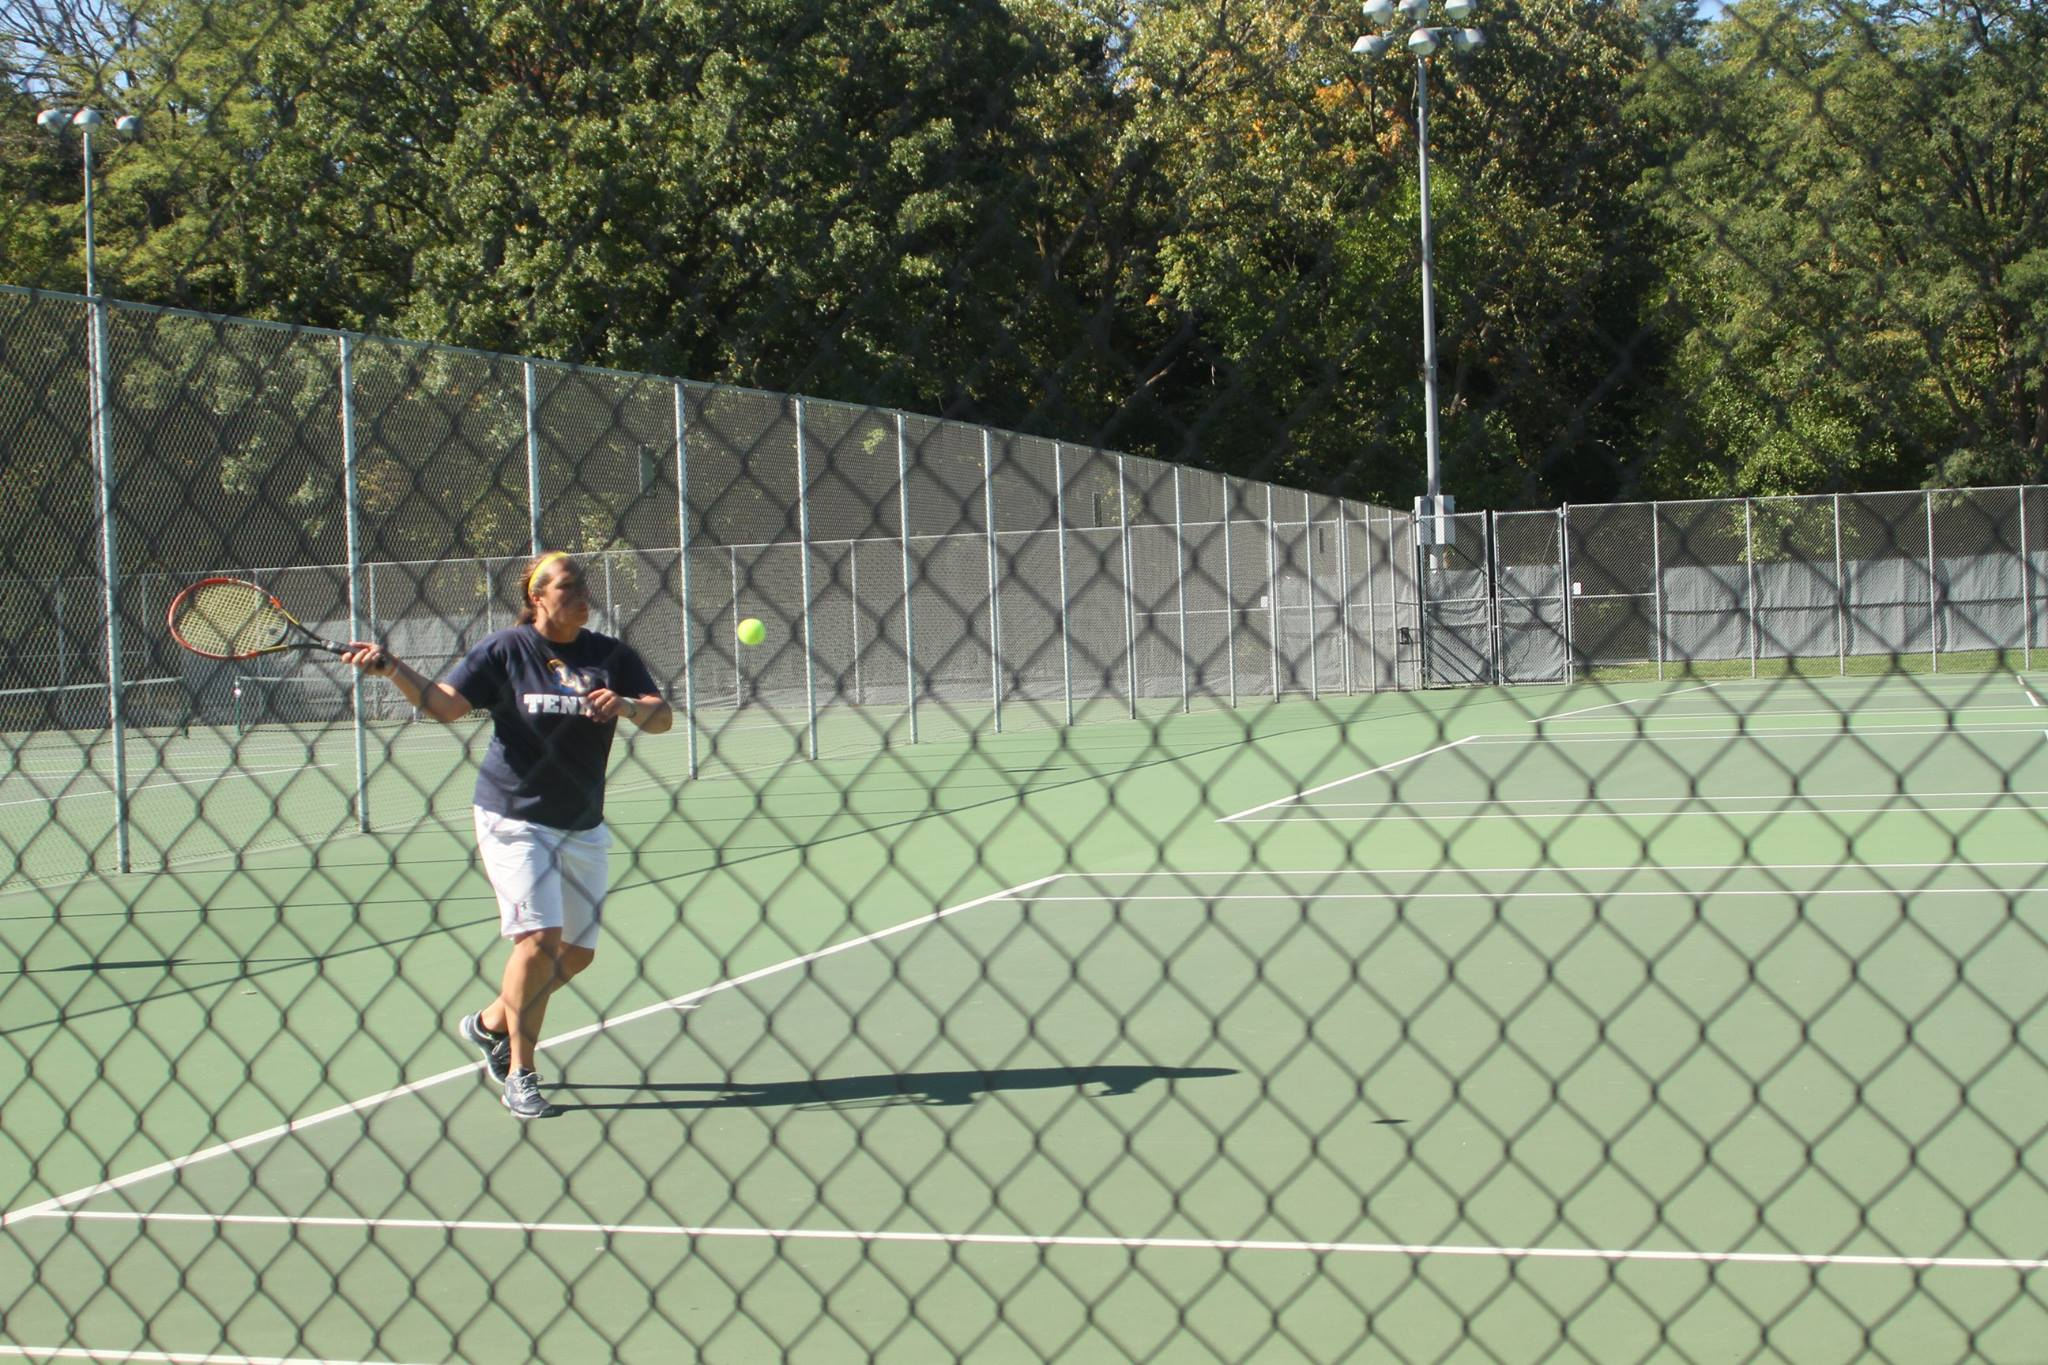 Mikayla Hilton, senior sports management major, uses an aggressive forehand to win the point.